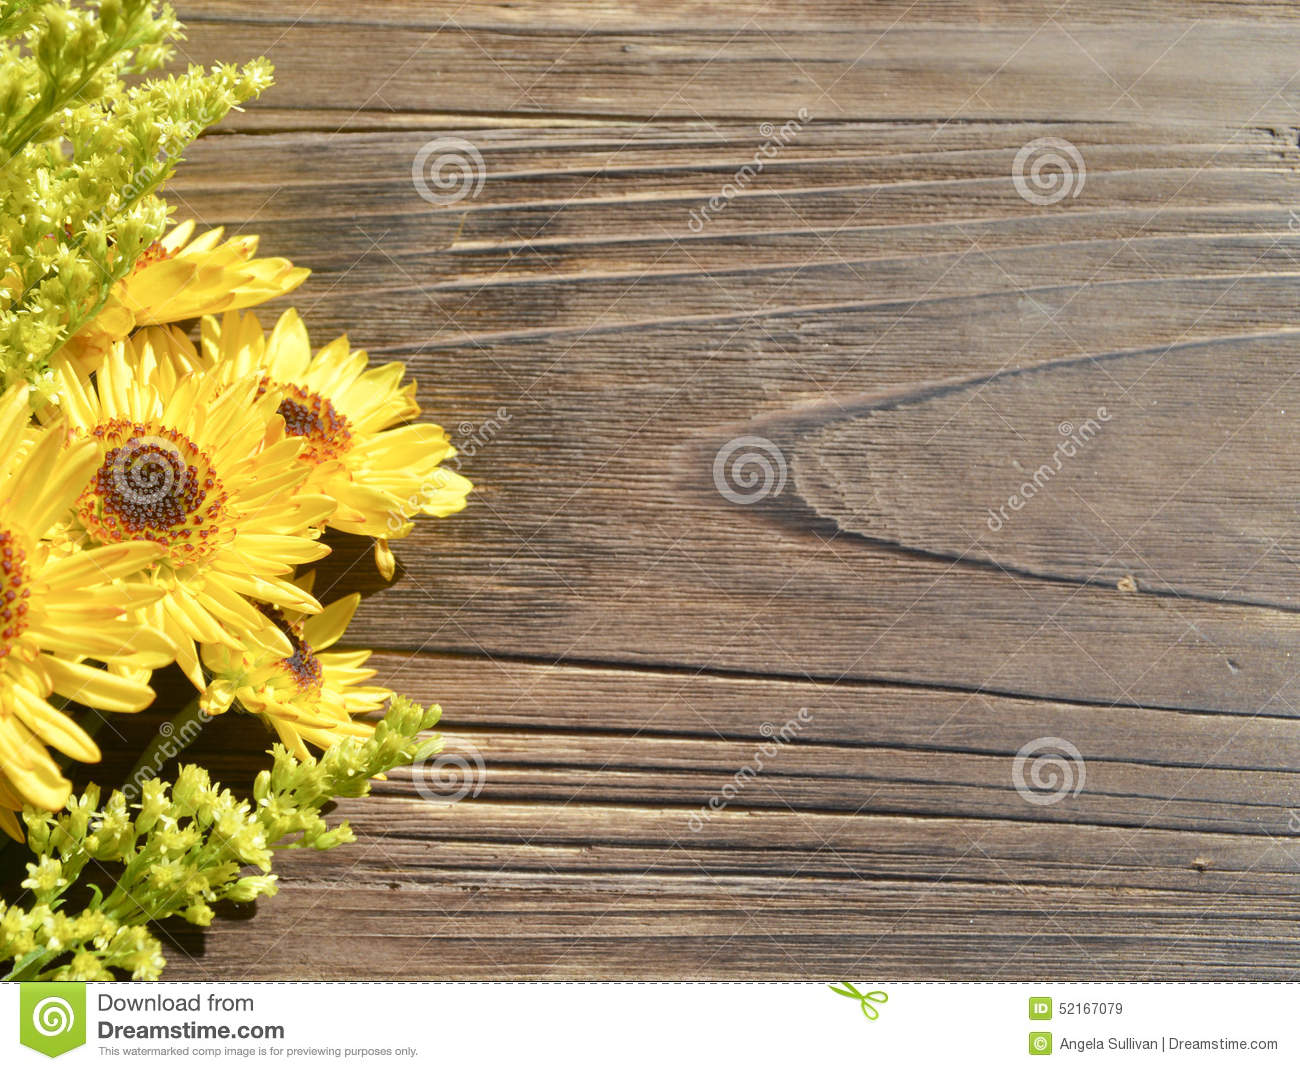 outdoor woods backgrounds. Fine Backgrounds Outdoor Woods Backgrounds Yellow Daisies Wood Background Outdoor Woods  Backgrounds N And C